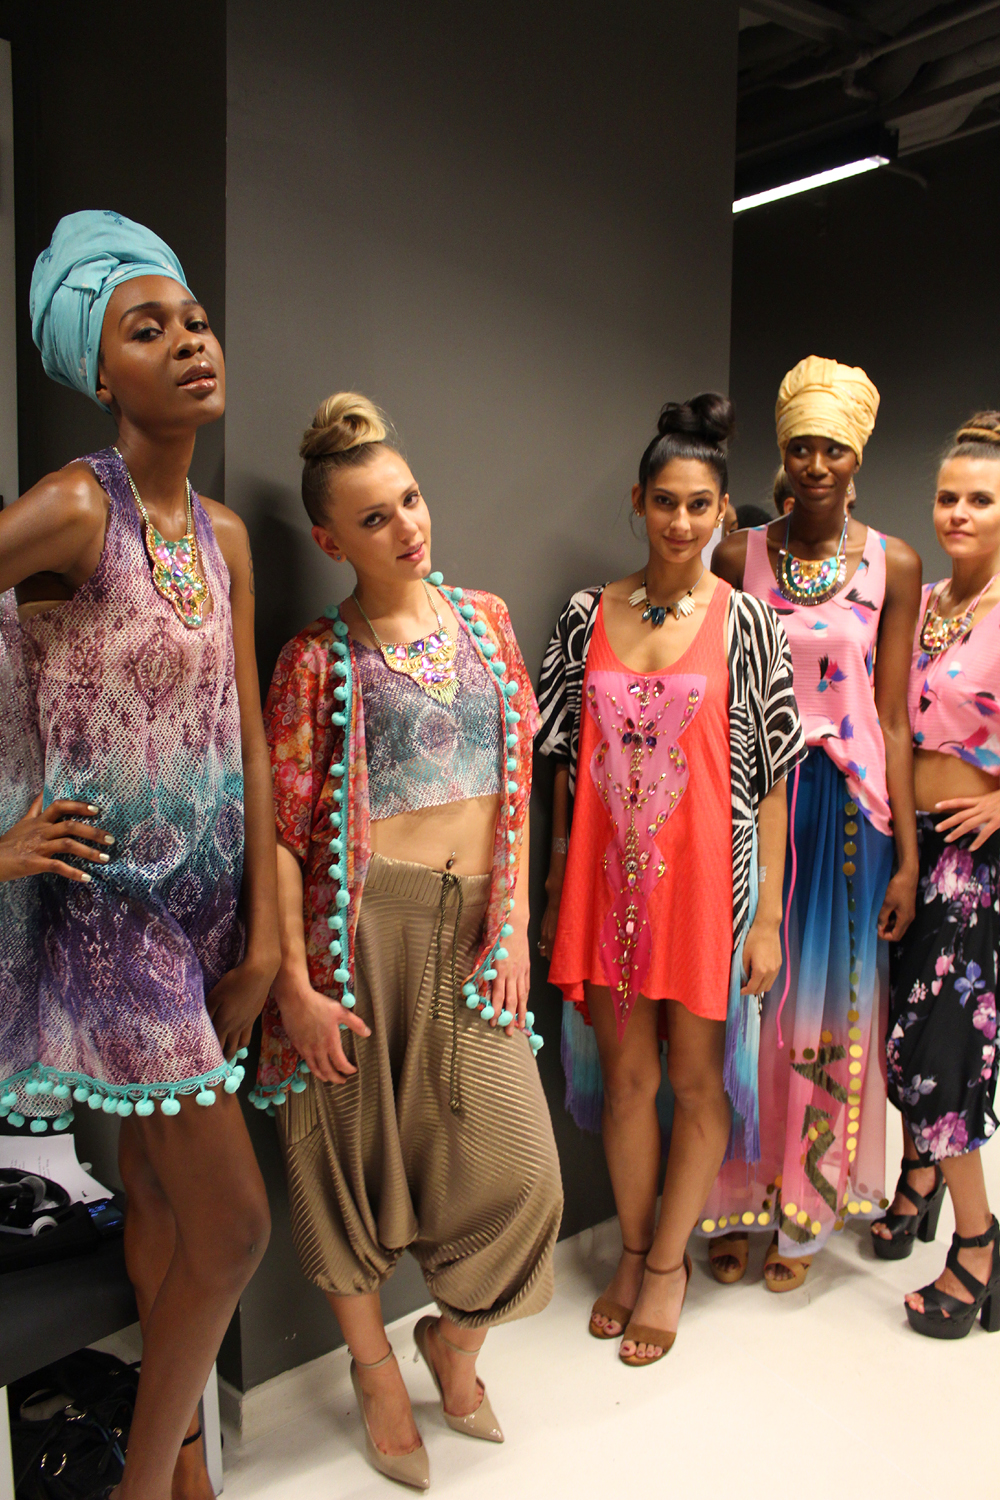 Bombay Mermaid fashion brand - backstage - sisters on the runway NYC - Hey Mishka 7